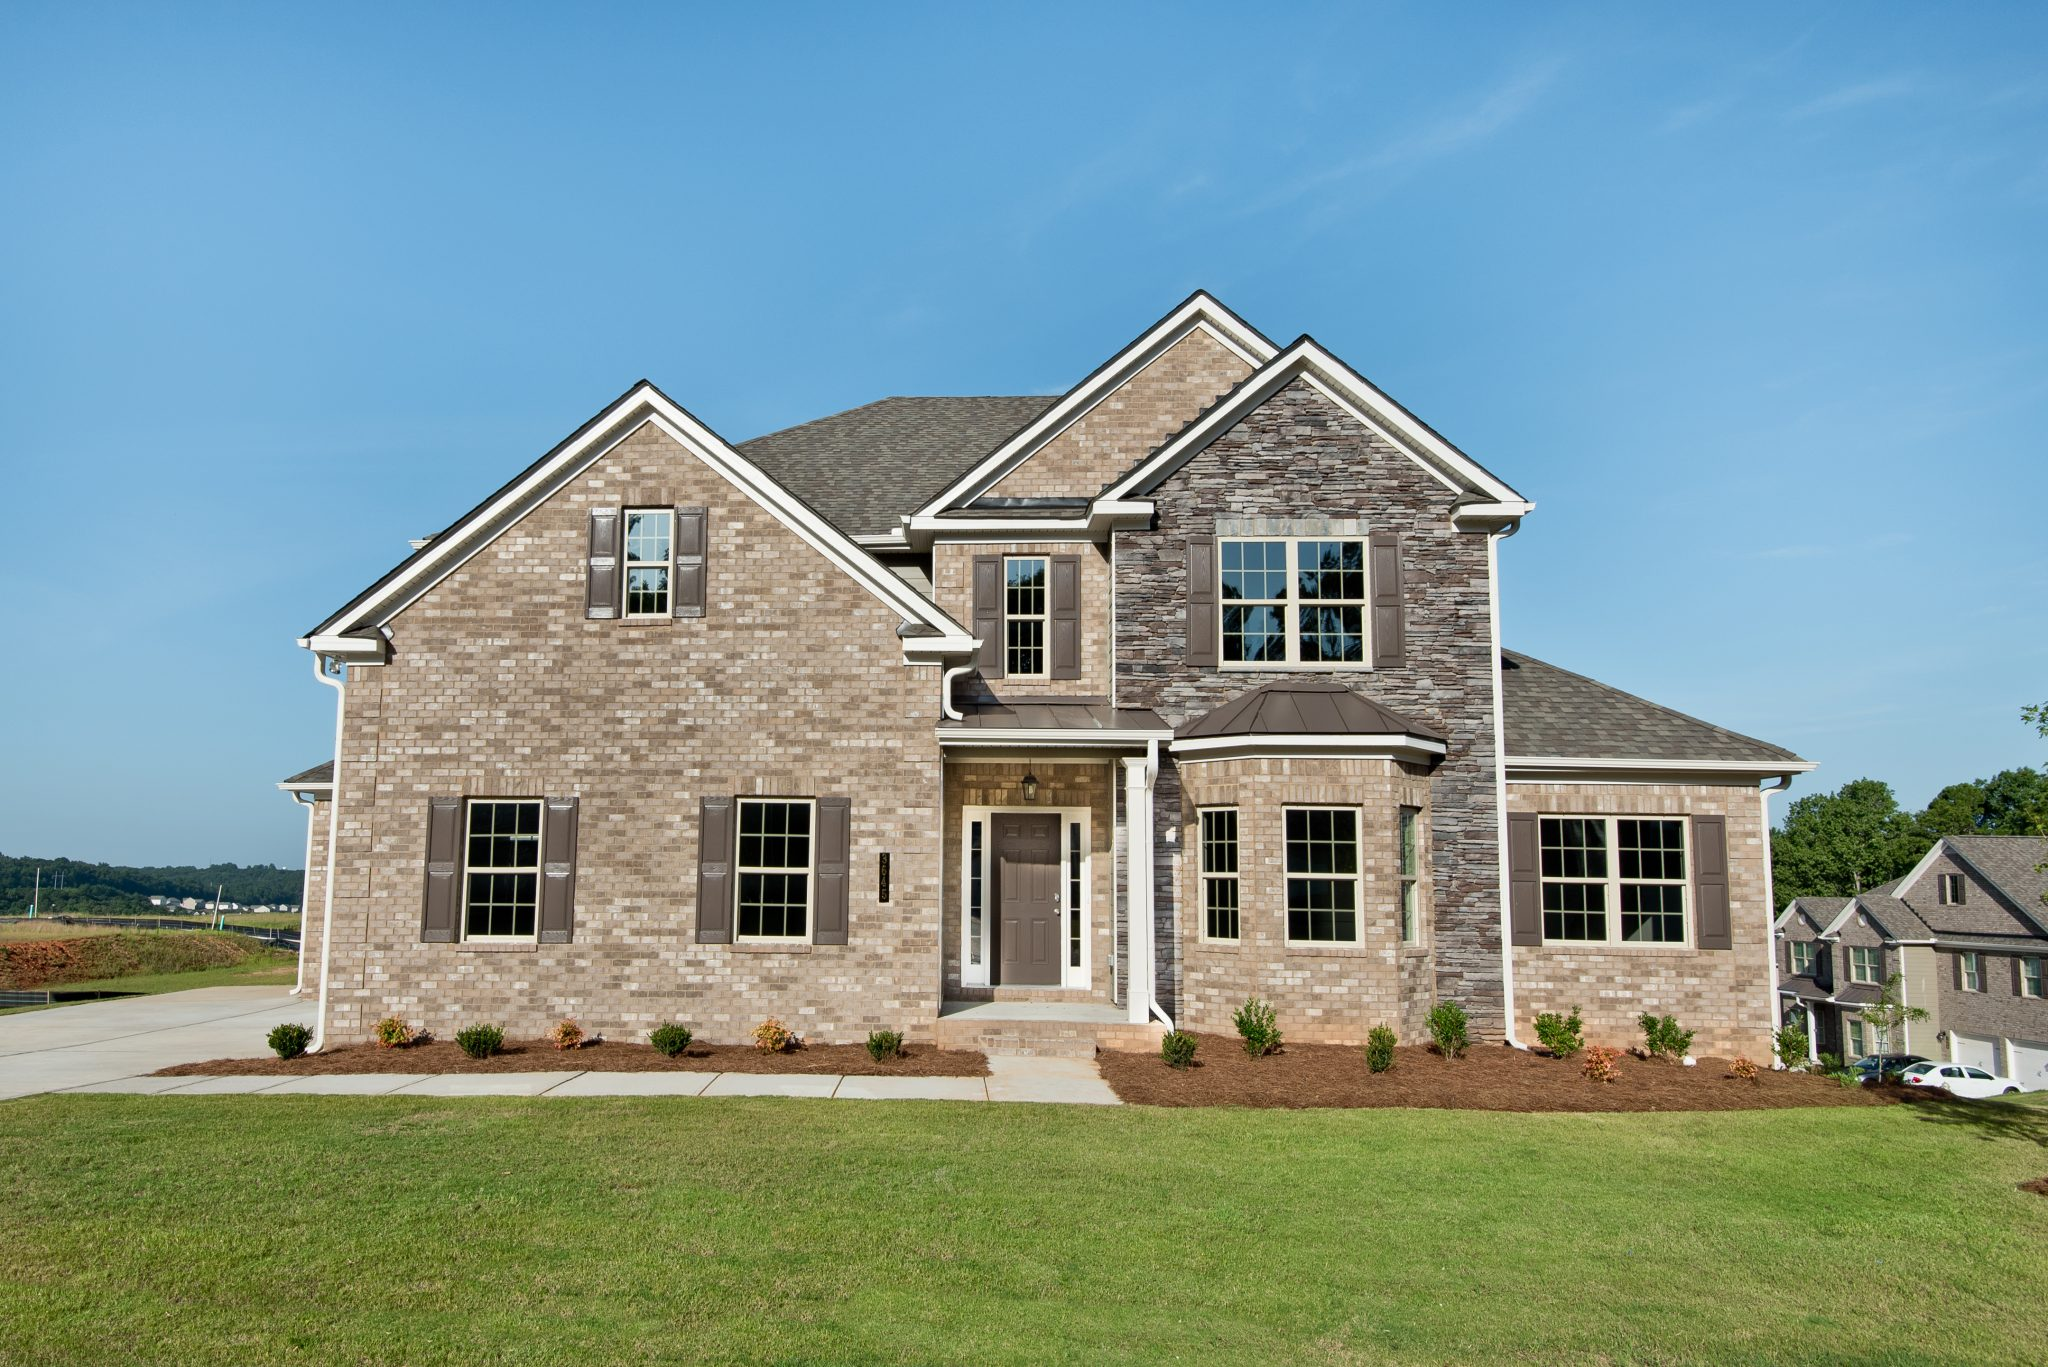 One of the New Construction Townhomes in Ozora Lake